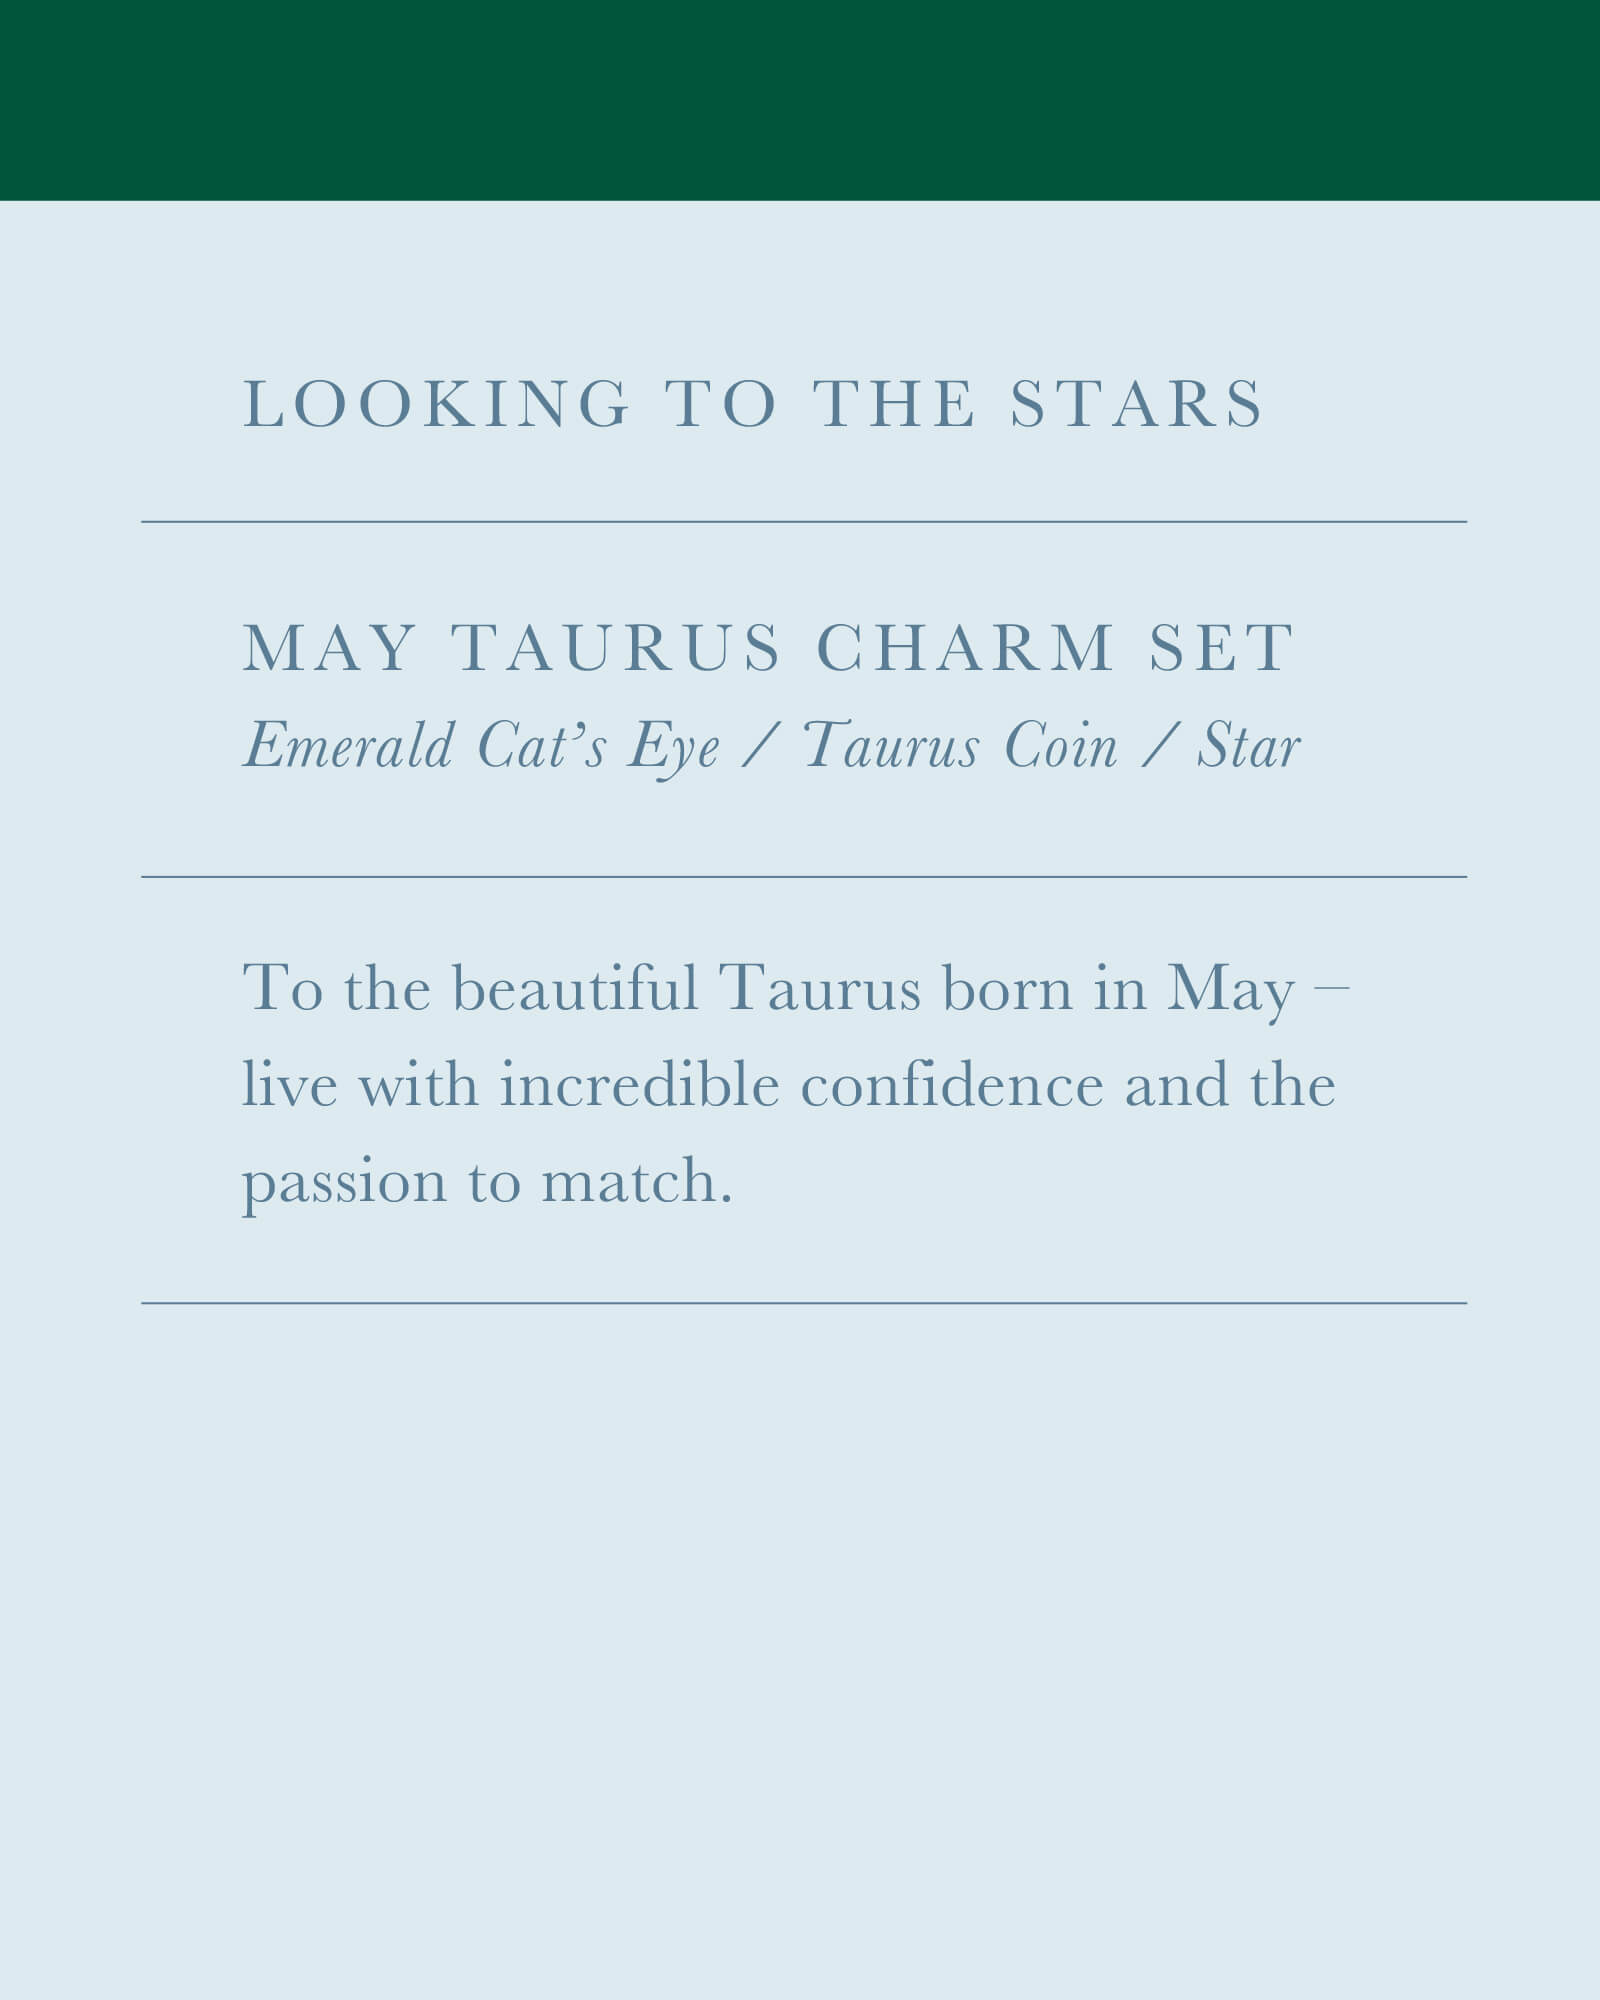 May Taurus Charm Necklace Set